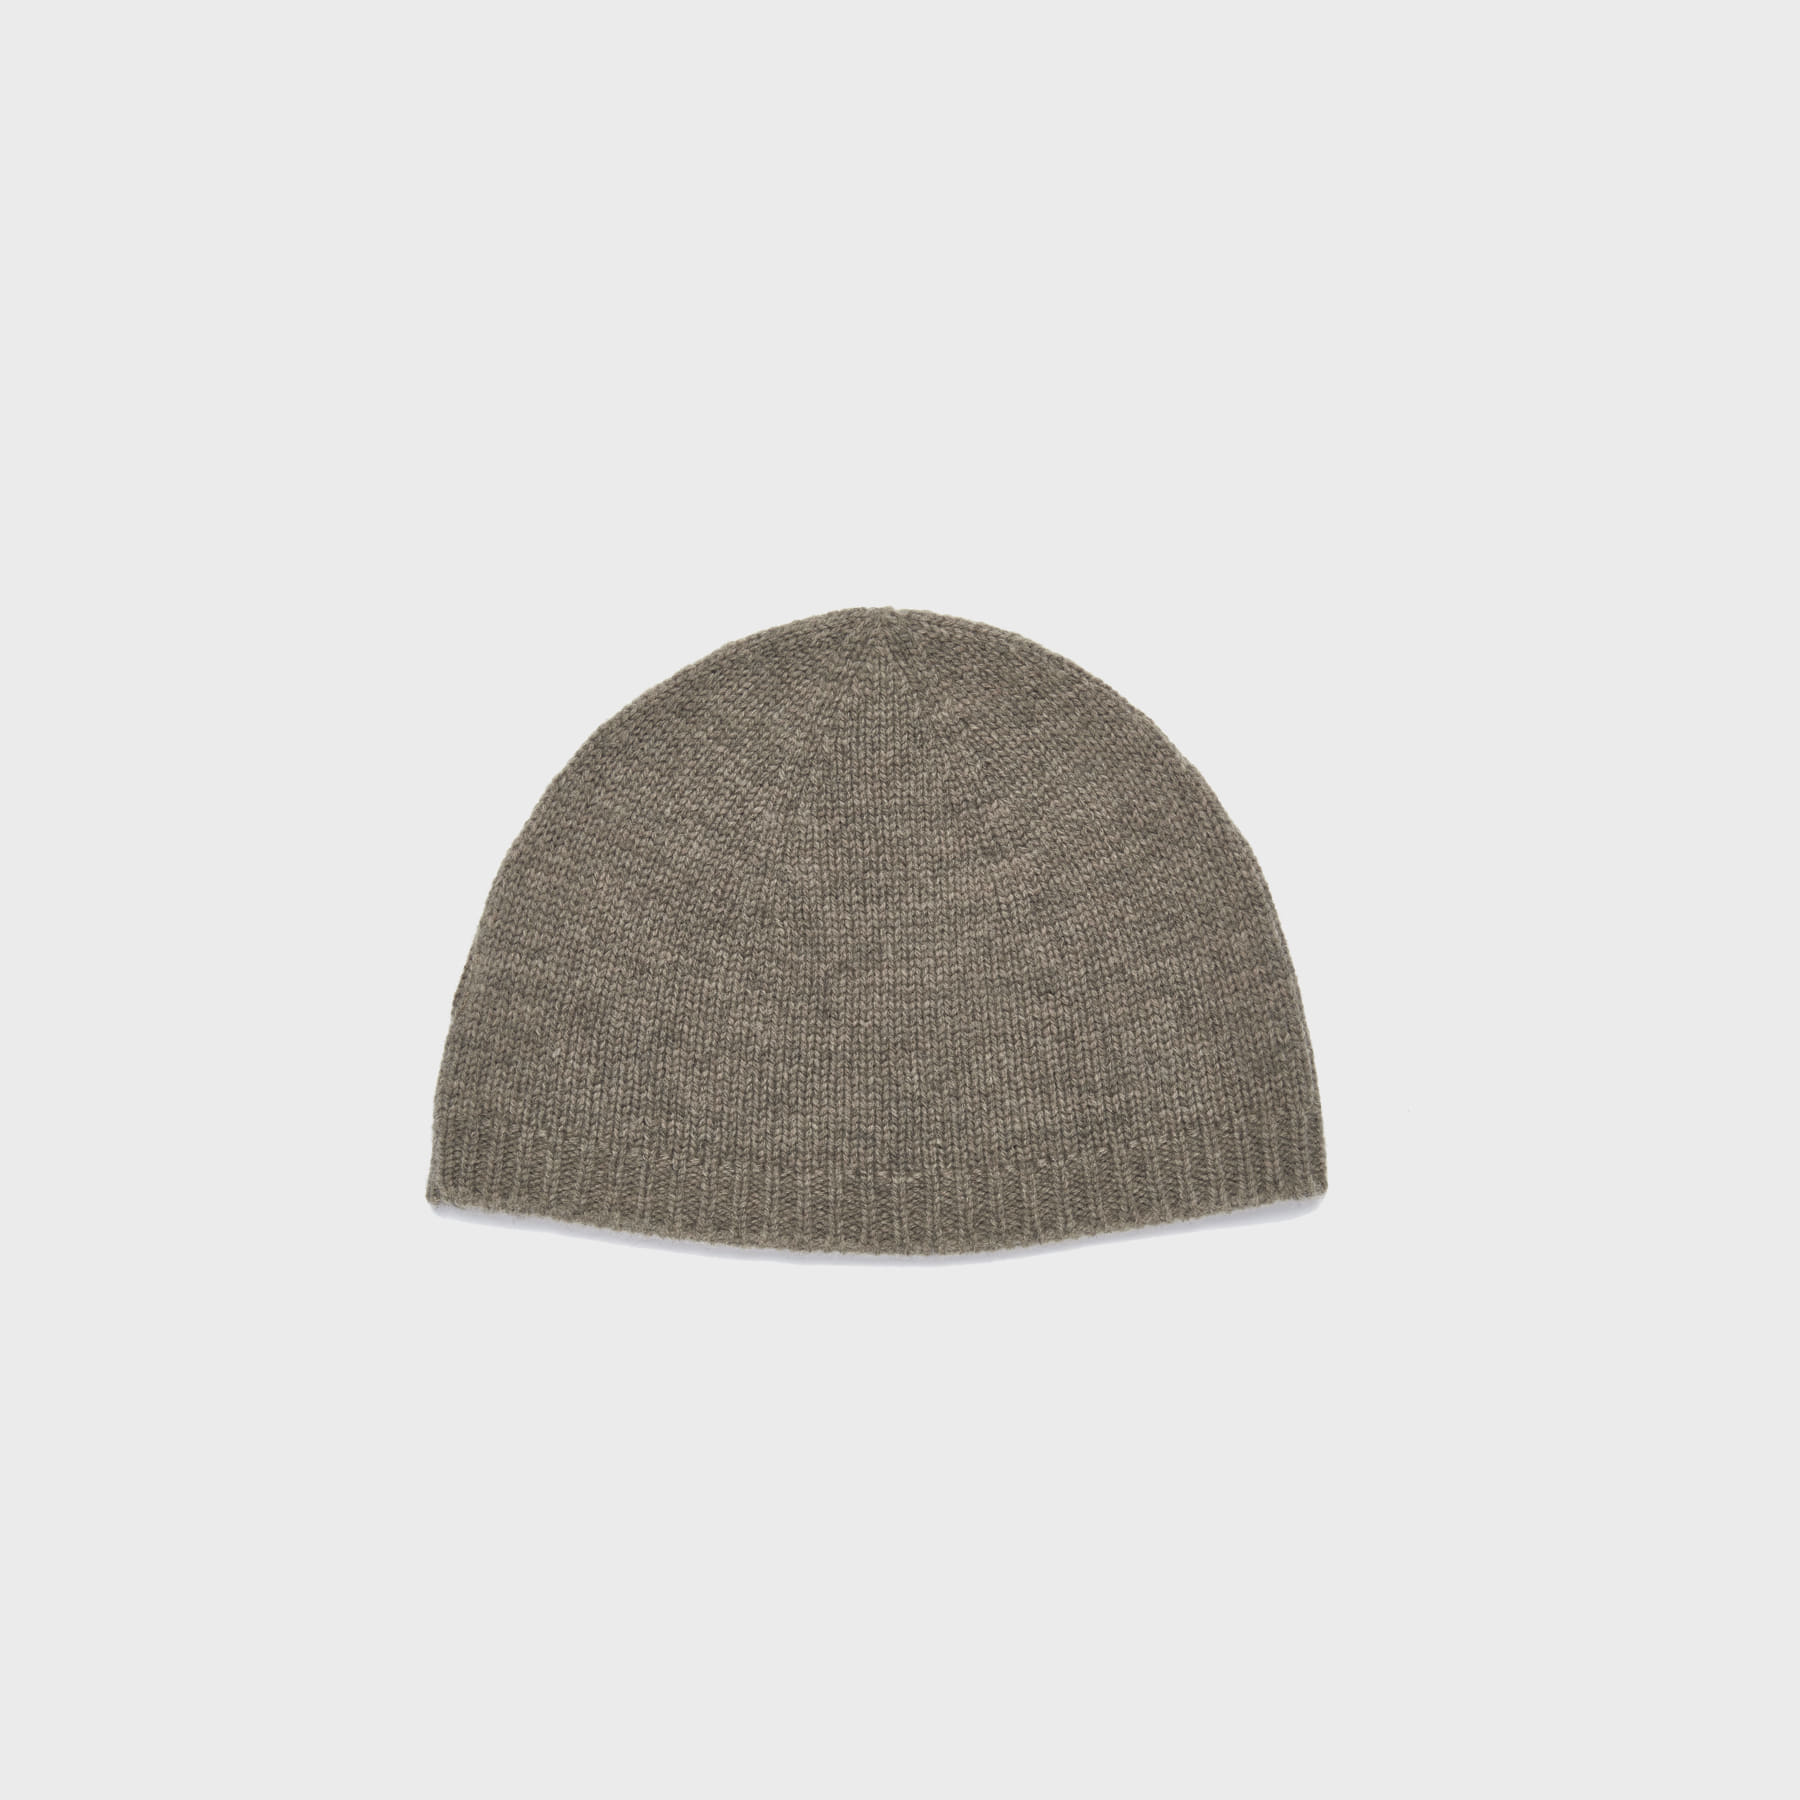 Wool watch cap (brown)